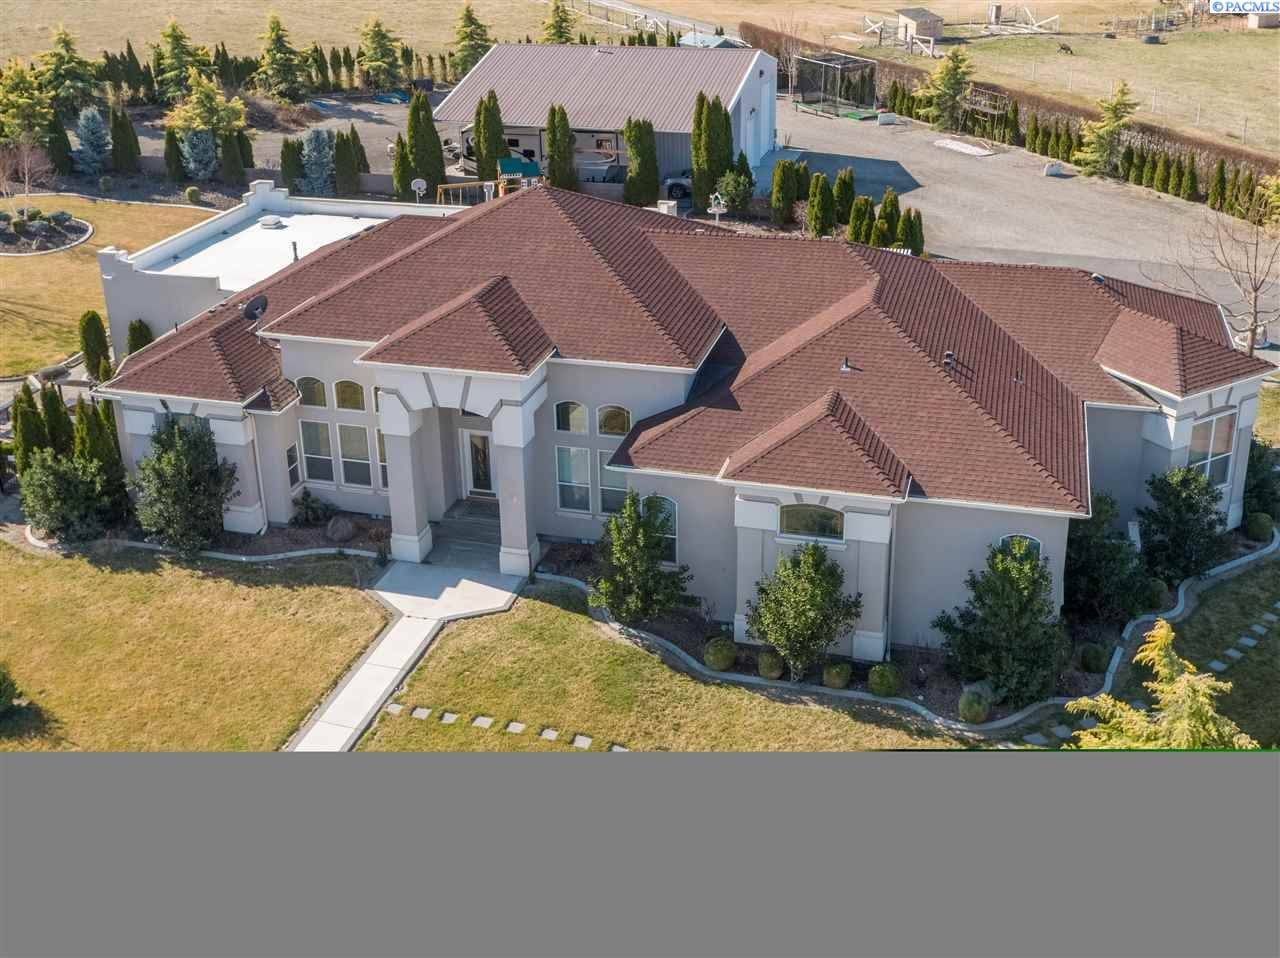 Single Family Home for Sale at 73103 Arena Road 73103 Arena Road Richland, Washington 99352 United States